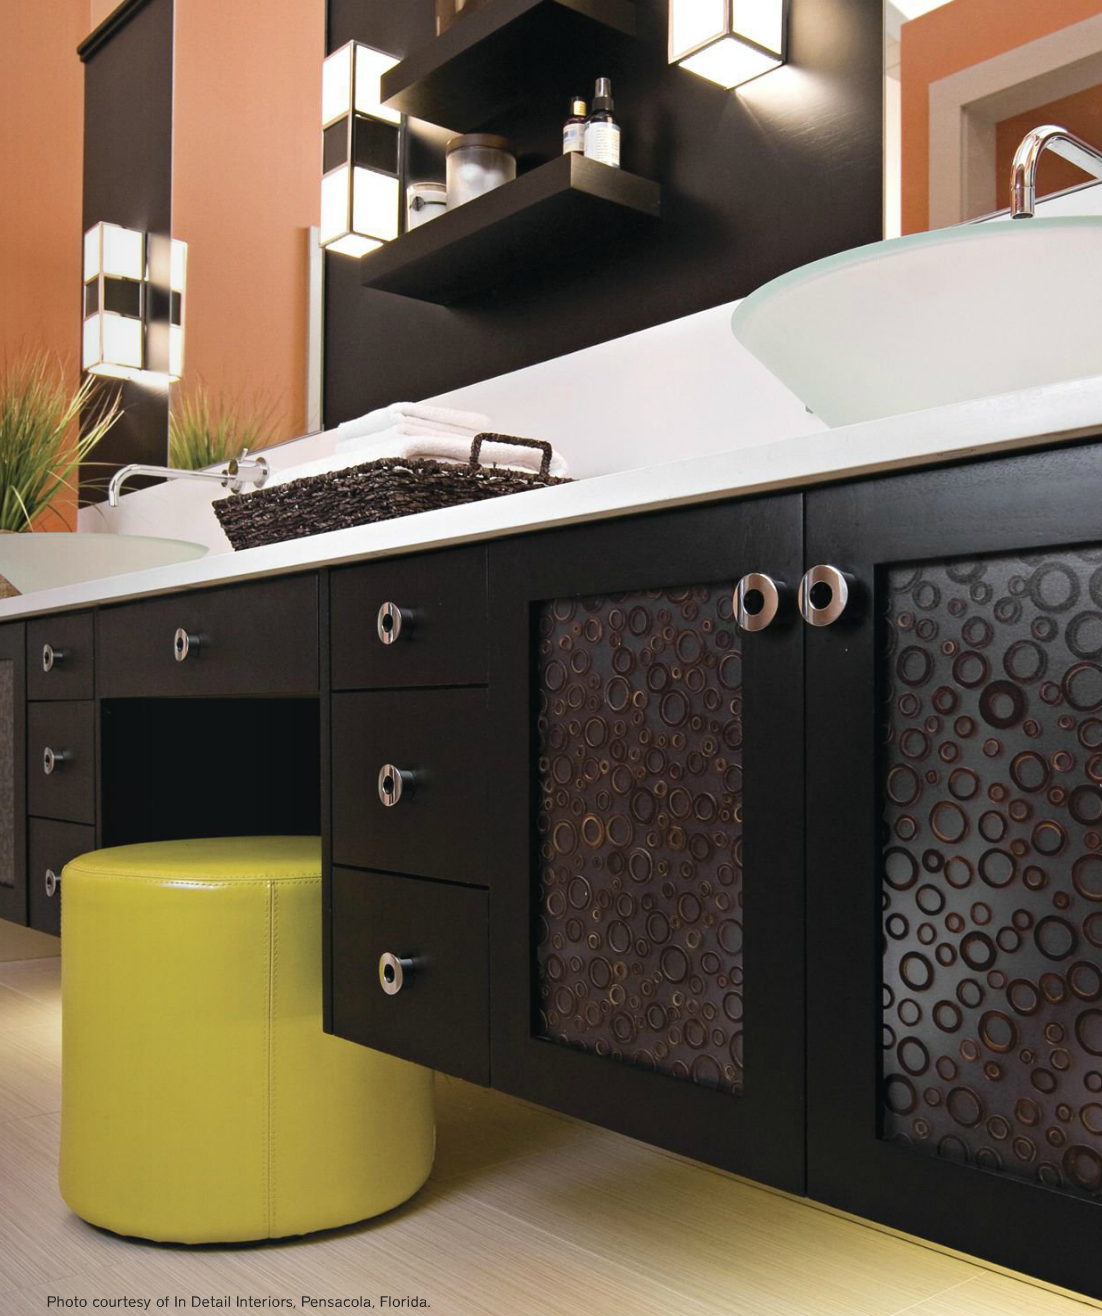 Modern Circle Knobs look great in this Contemporary Bathroom and add the perfect dash of retro flair!